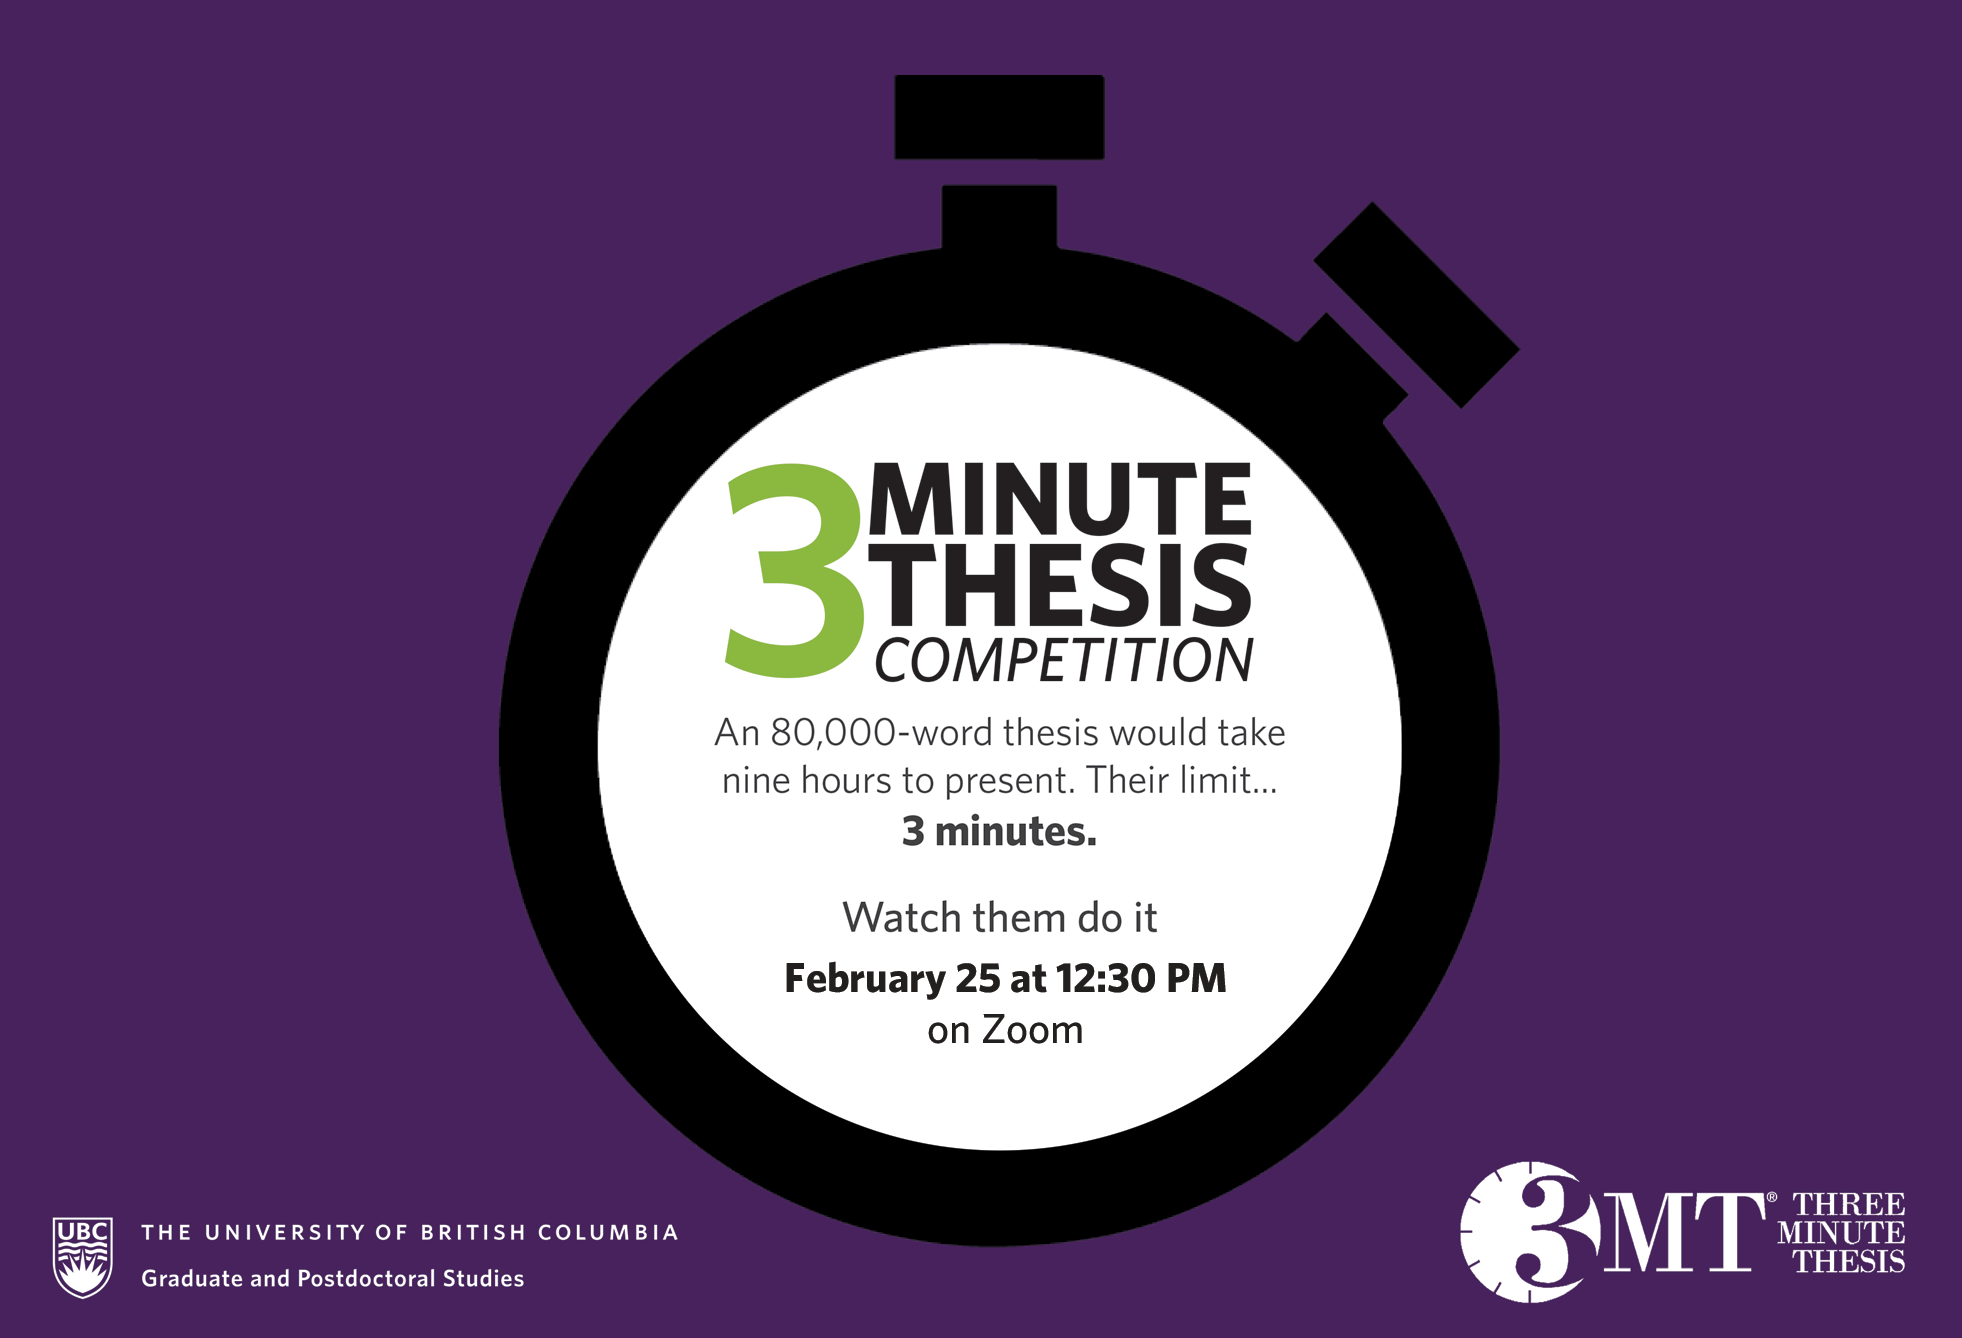 3 Minute Thesis poster